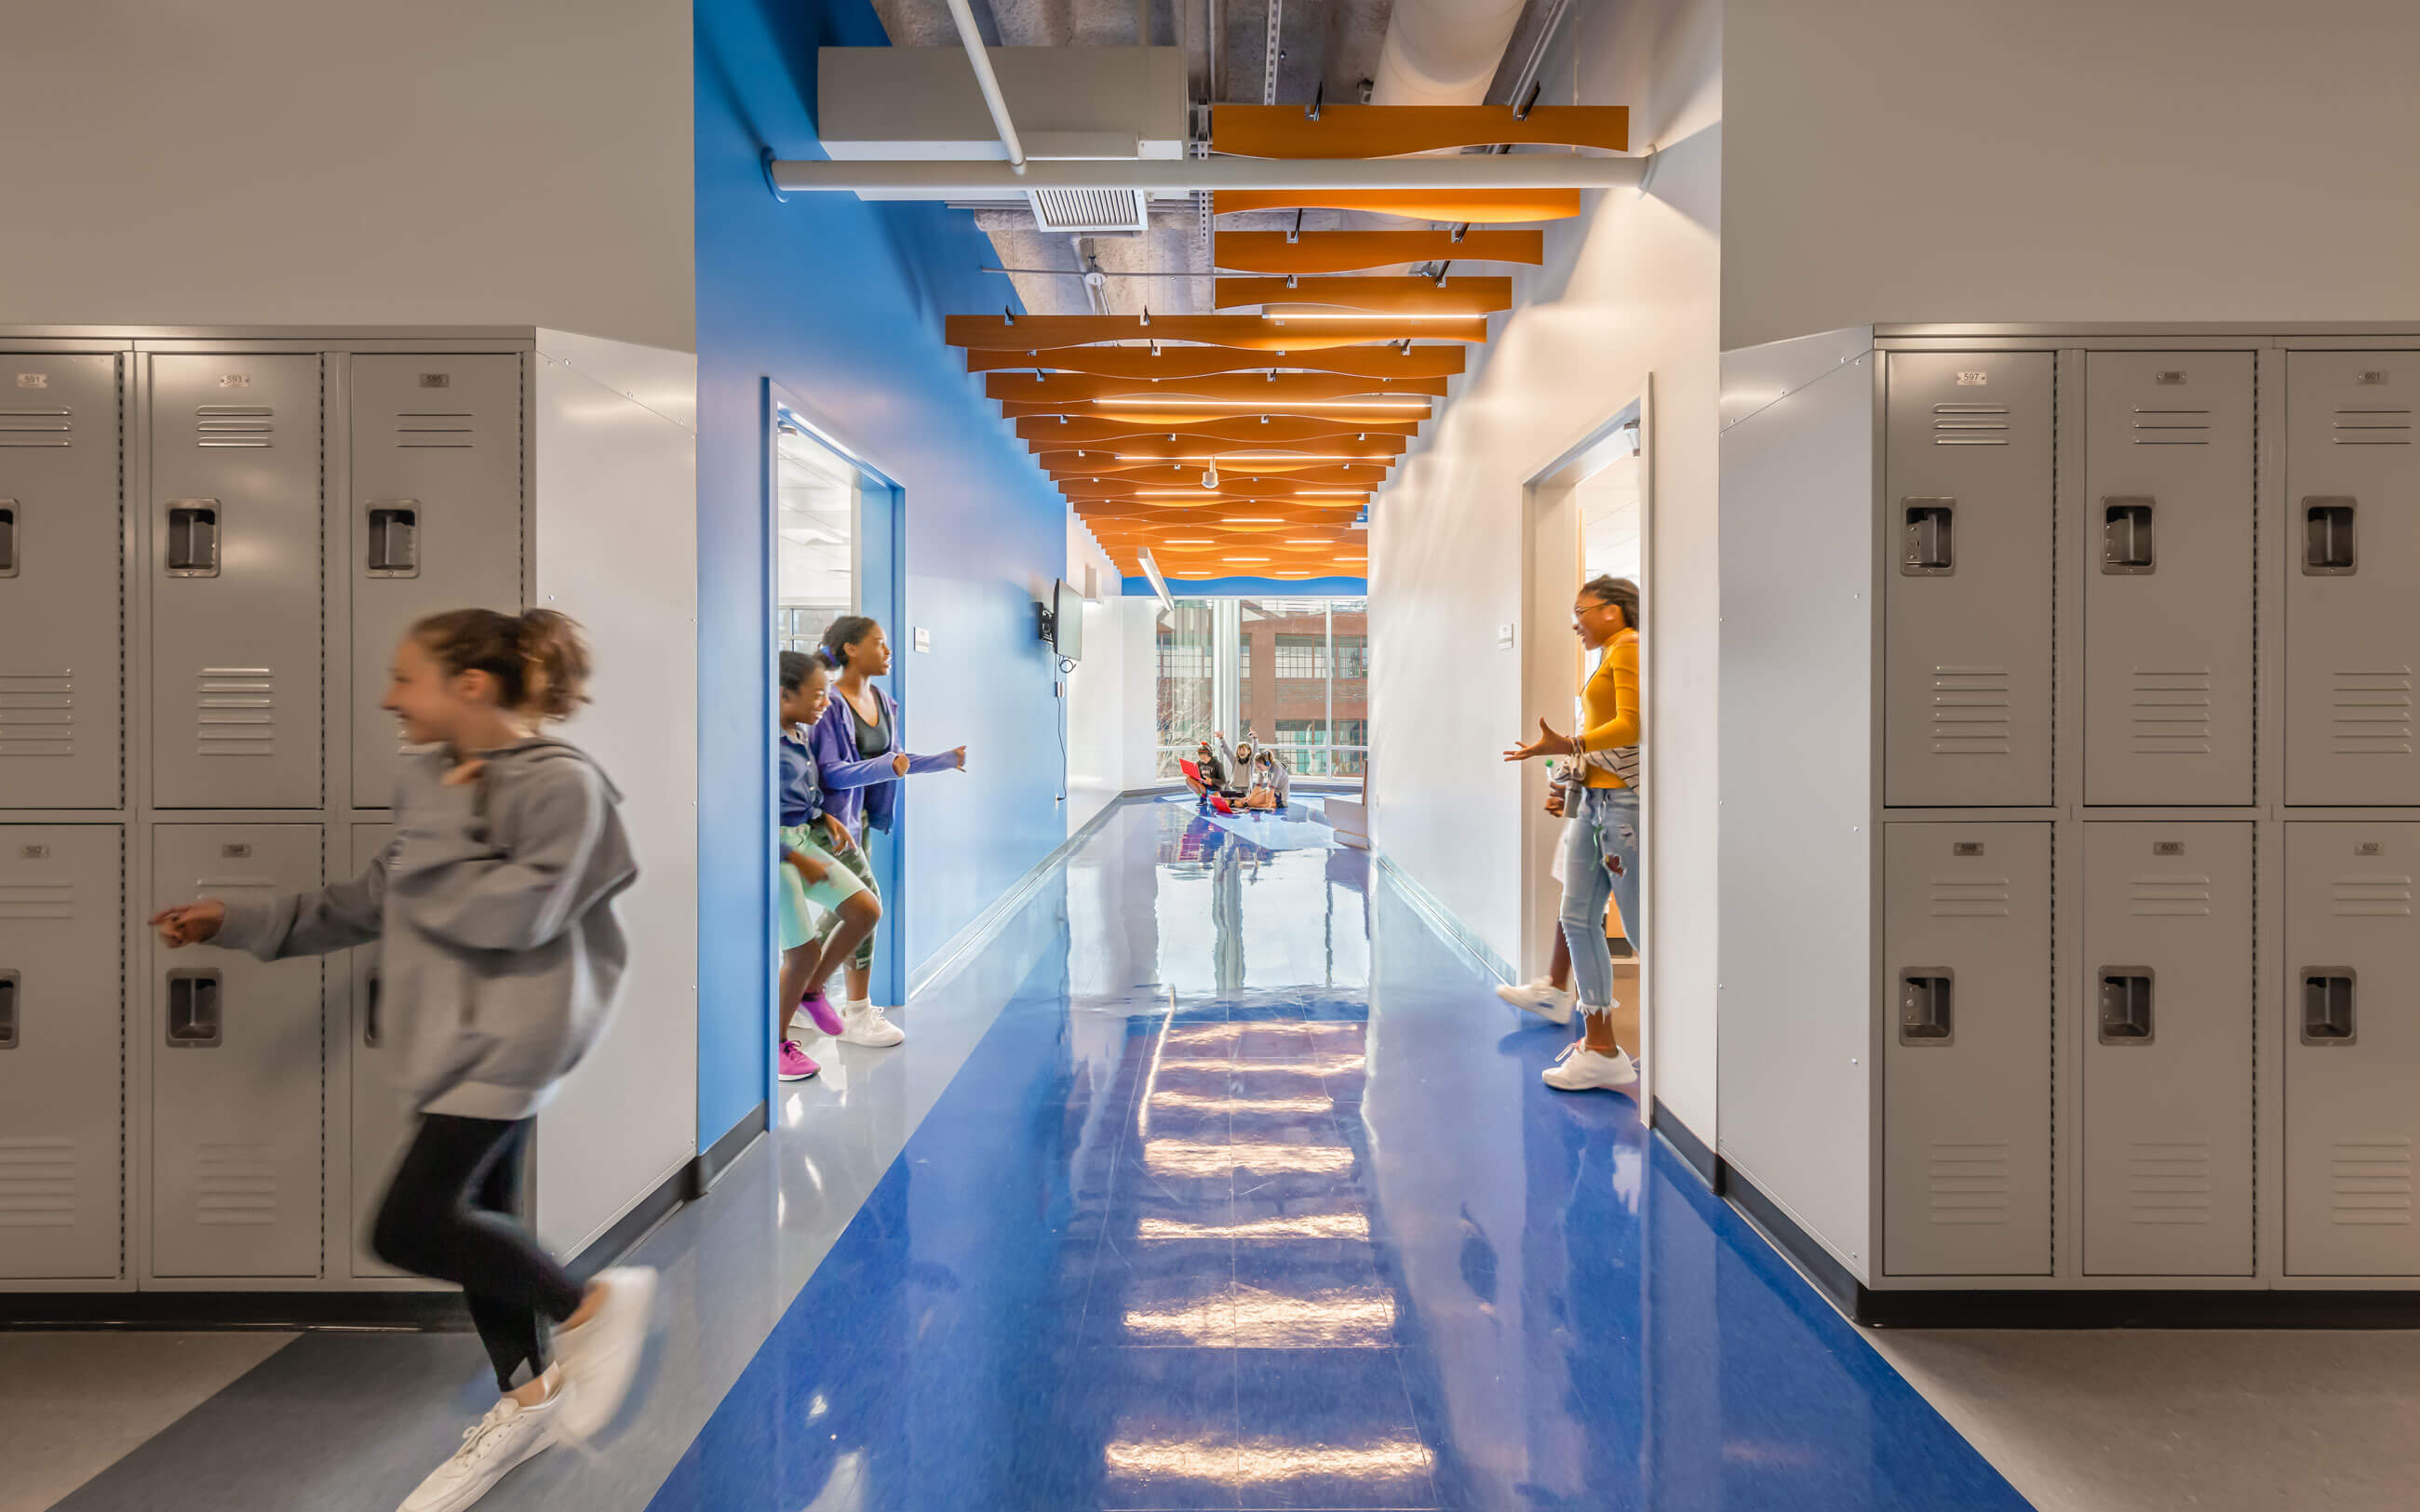 Students coming out of the classroom into a blue hallway with gray lockers and wavy ceiling panels.